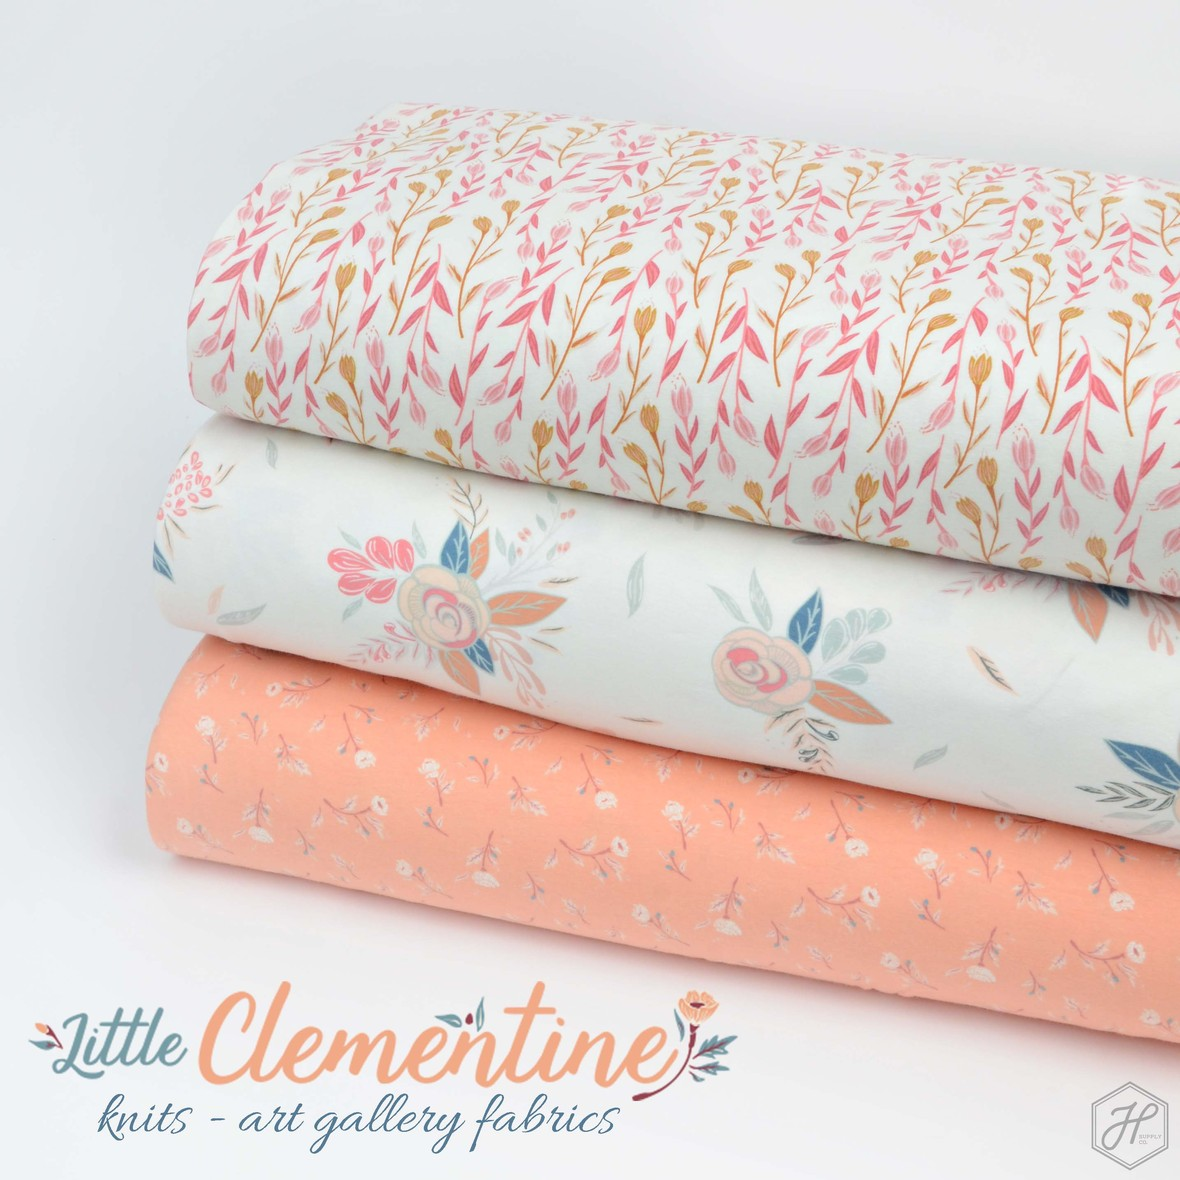 Little Clementine Fabric Knits ARt Gallery Fabrics at Hawthorne Supply Co